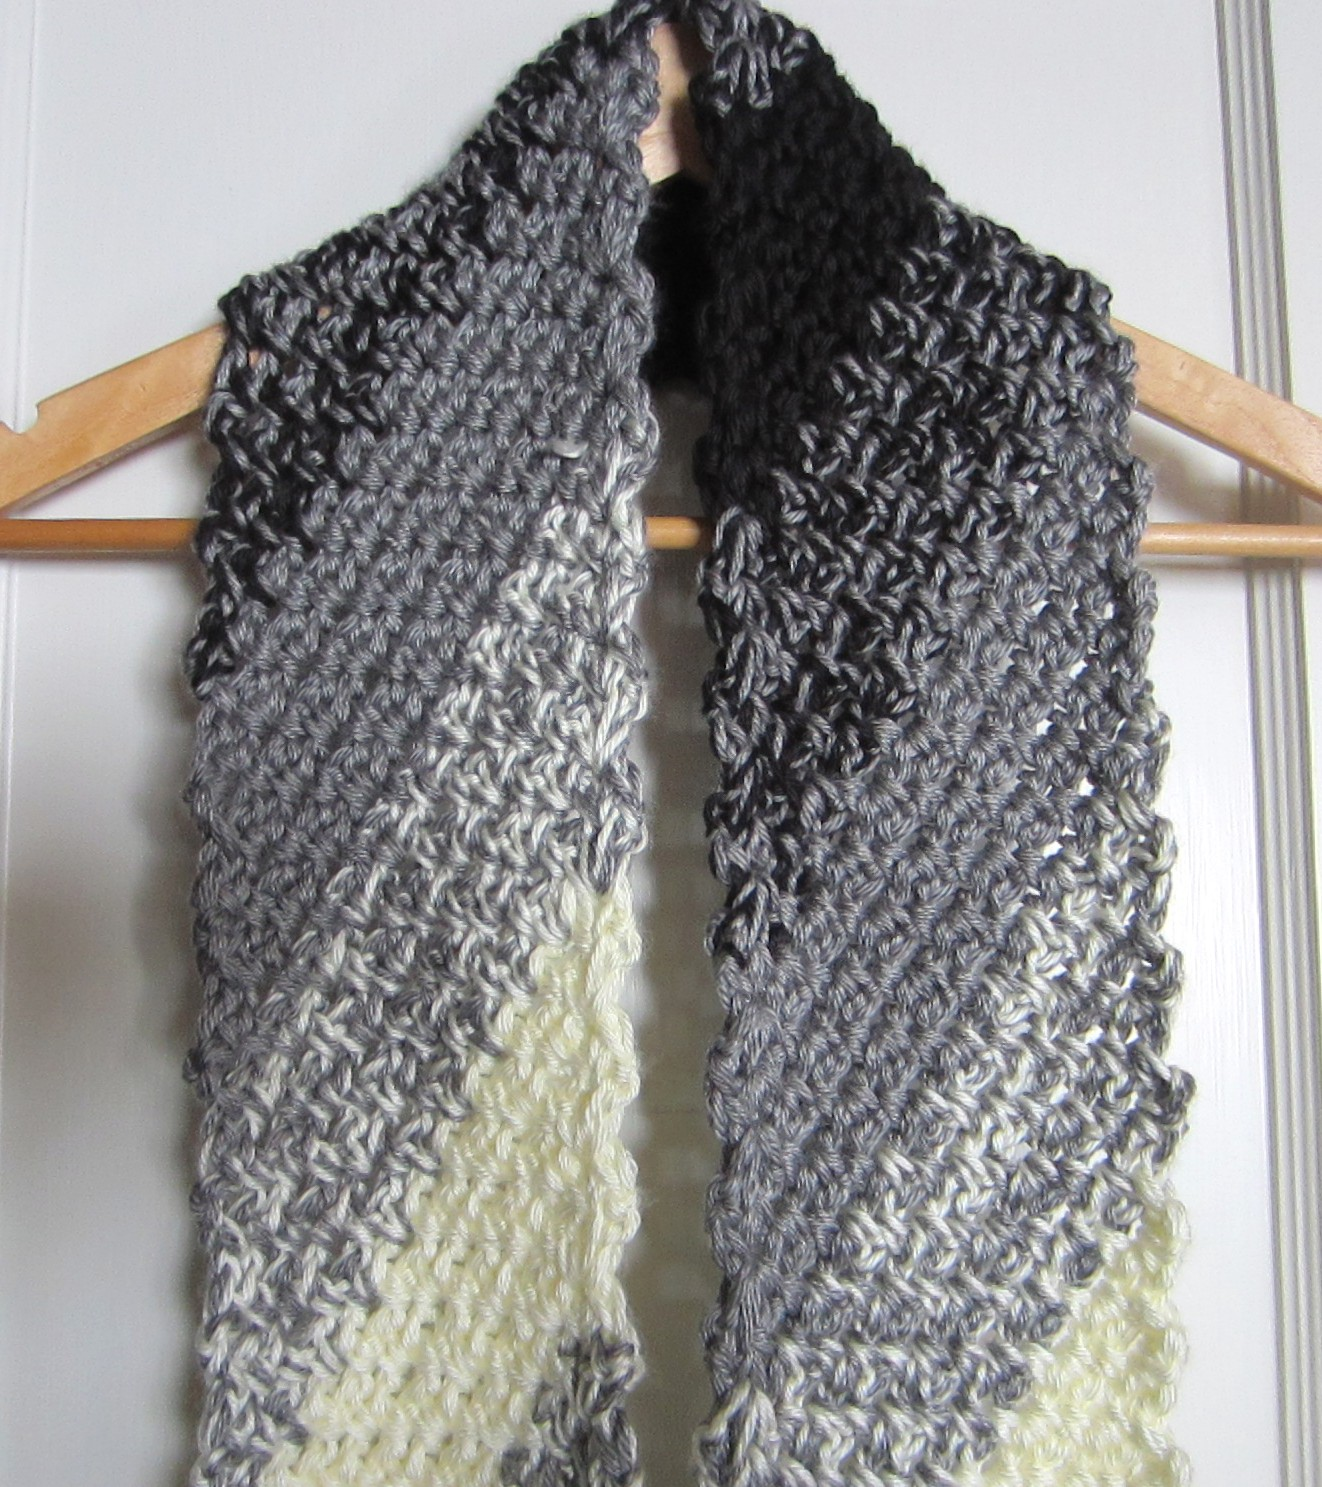 Crocheting Scarves : crochet, scarf, black and white, diagonal 002 G-Ma Ellens Hands ...